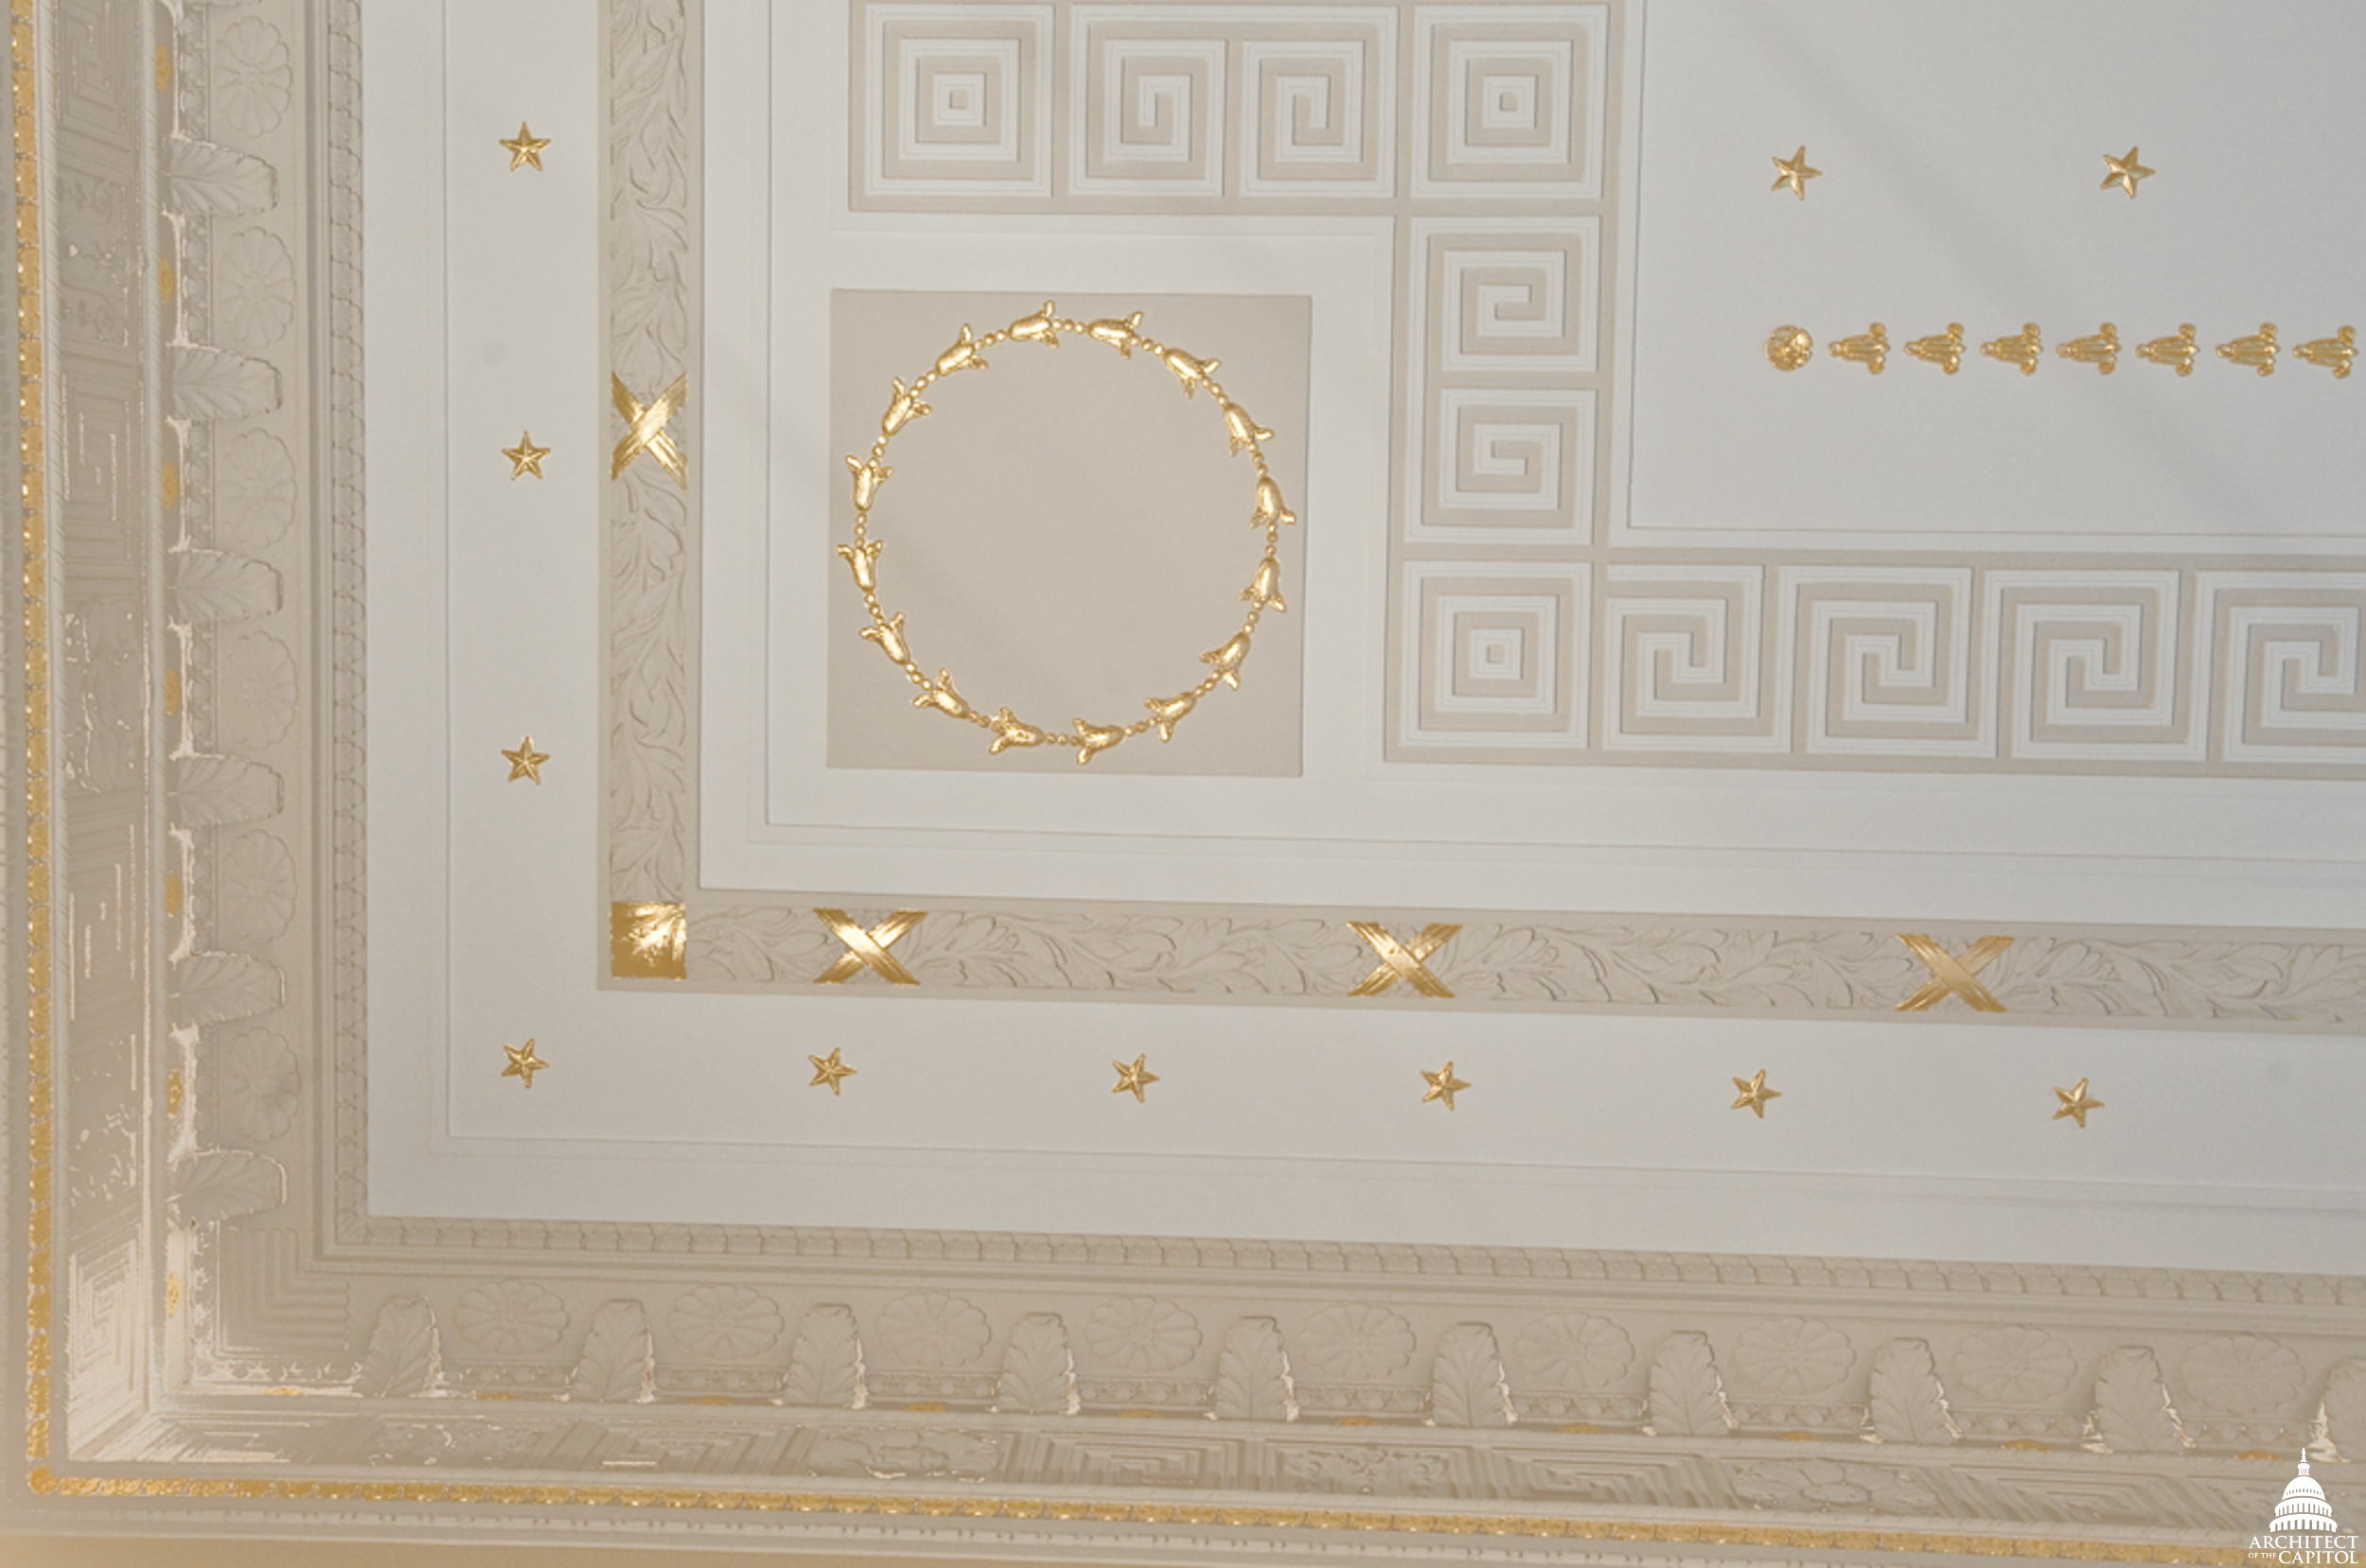 Example of decorative ceiling in the Longworth Building.